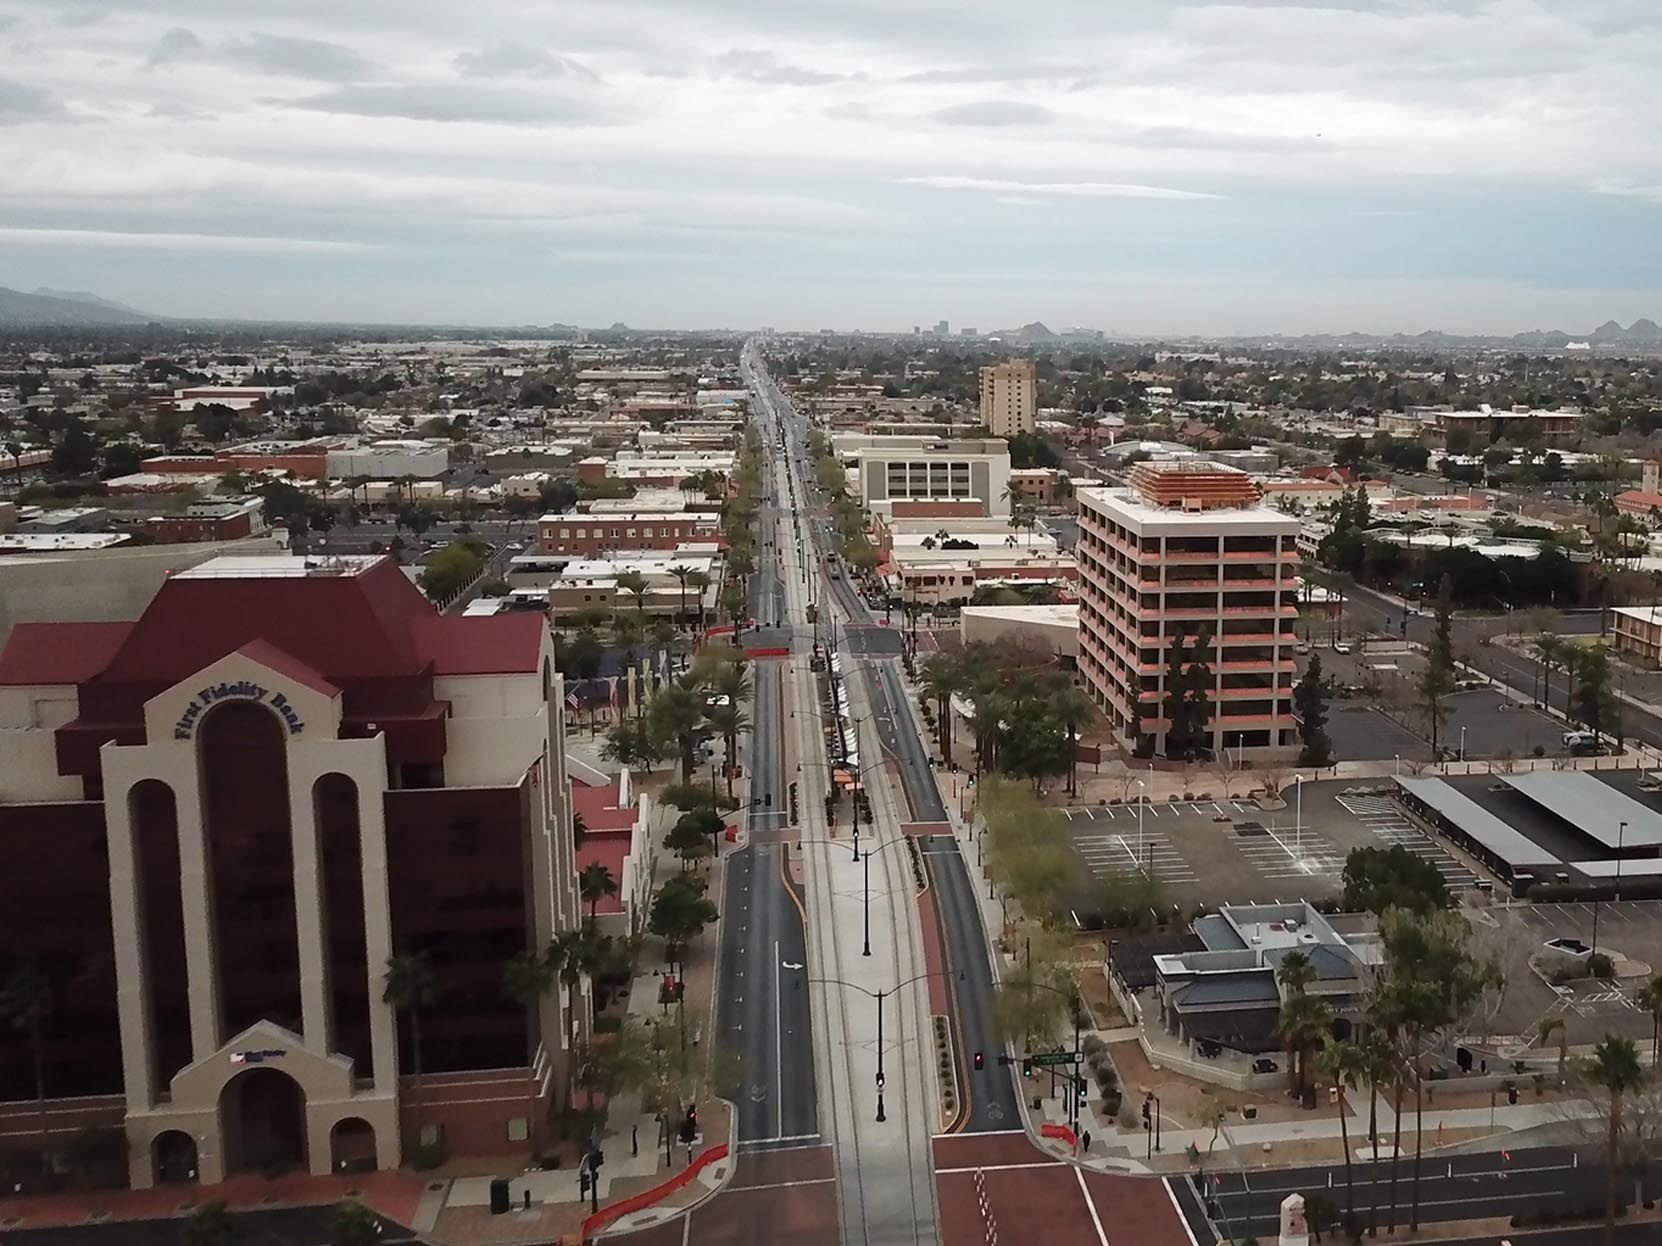 Mesa juggles downtown growth, livability | East Valley Tribune